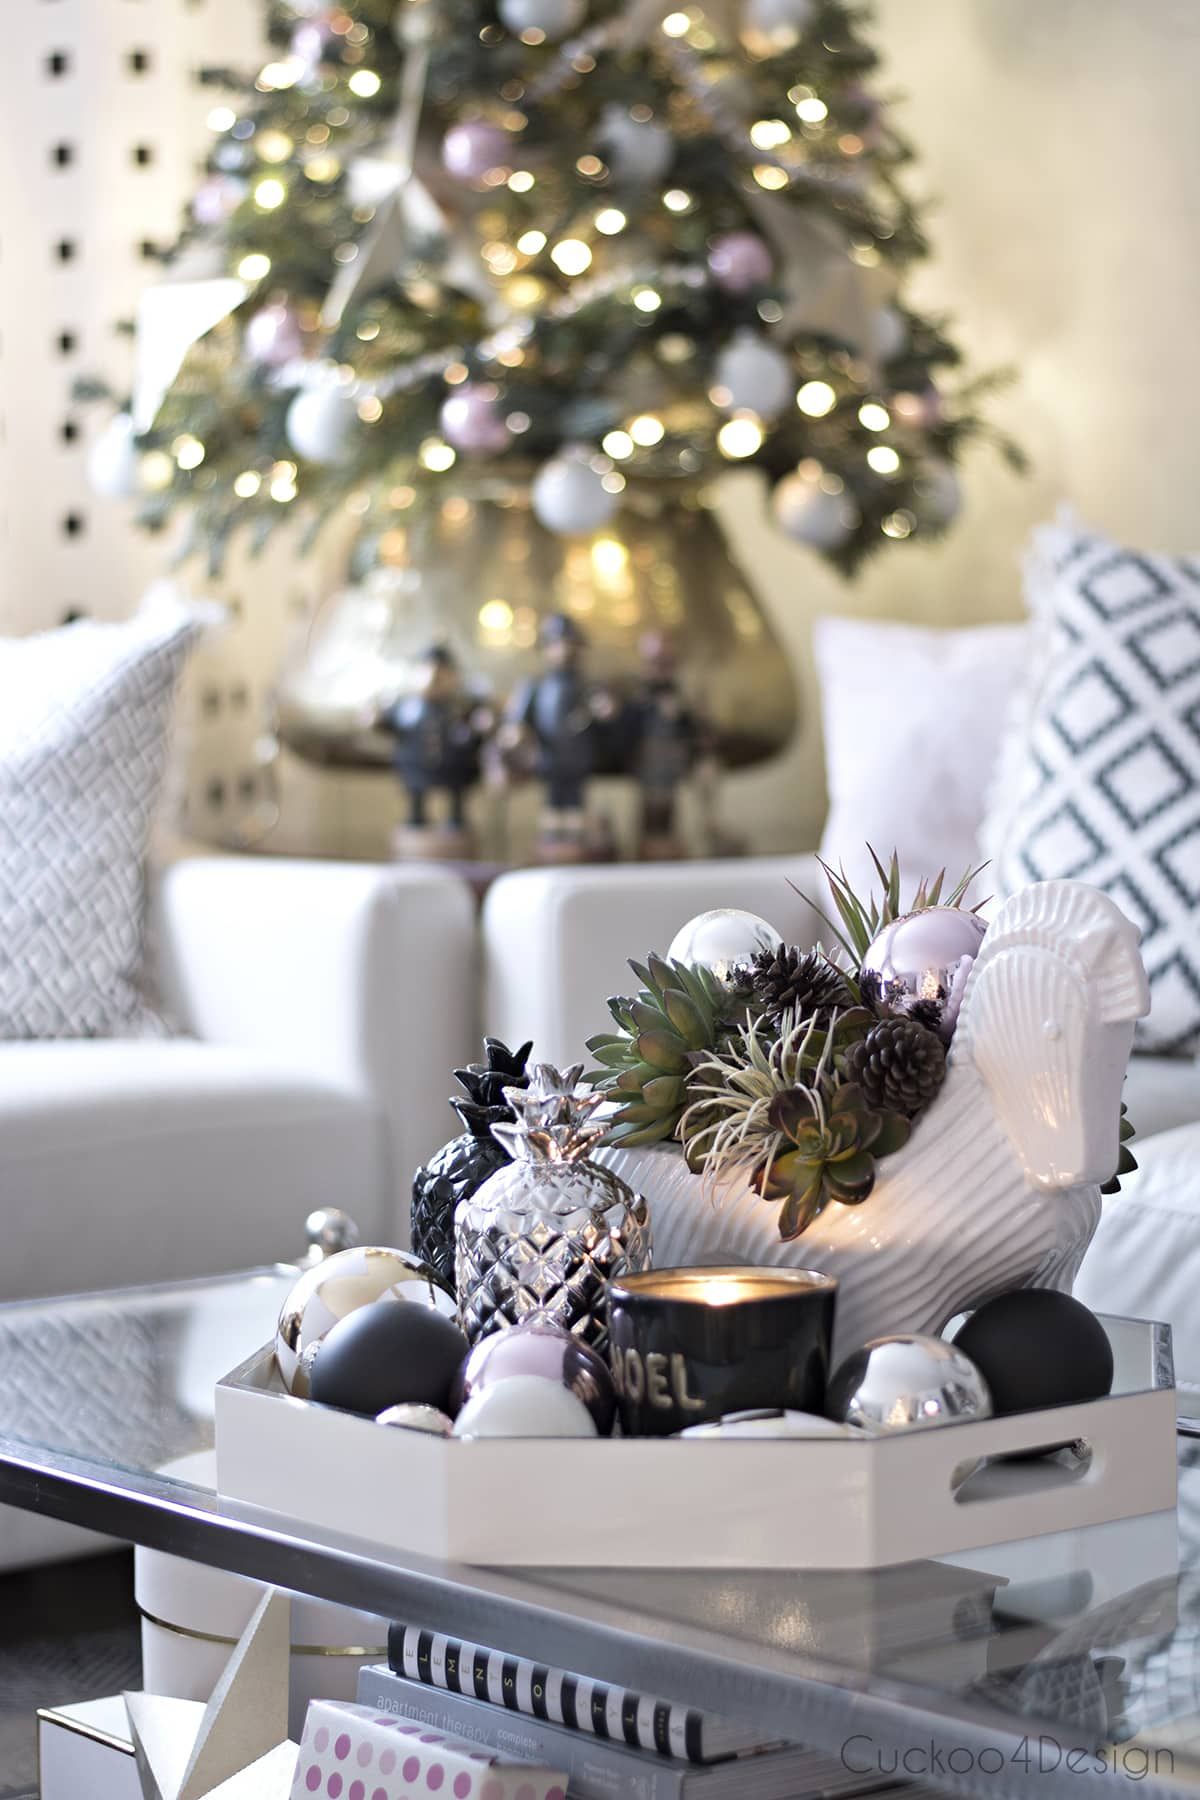 beautiful pineapple candles decorated for Christmas with ceramic horse planter and small Christmas tree in vintage brass pot